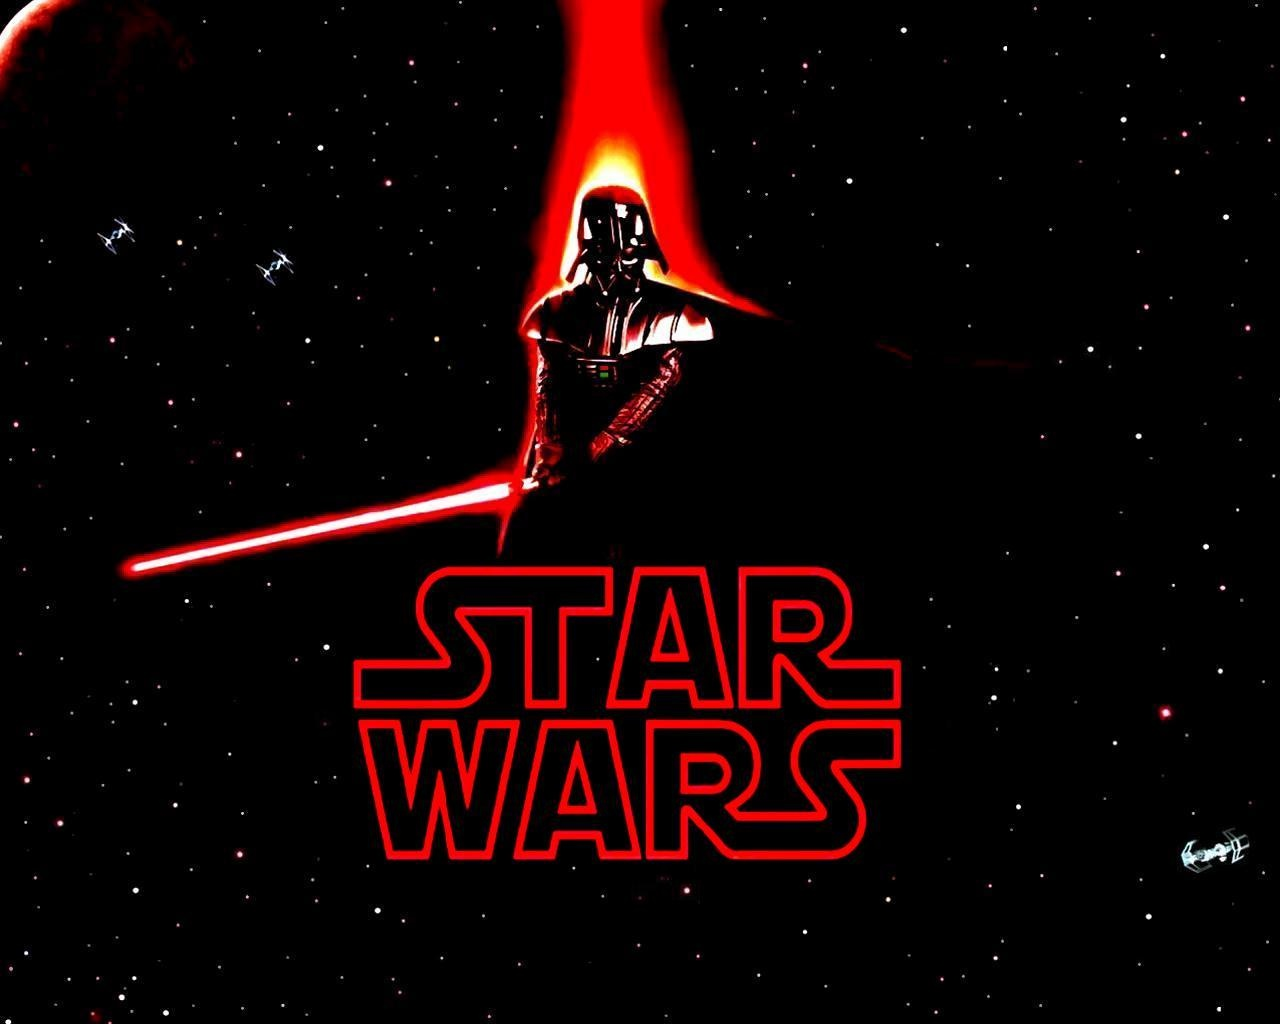 STAR WAR WALLPAPER: Star Wars Hd Wallpaper